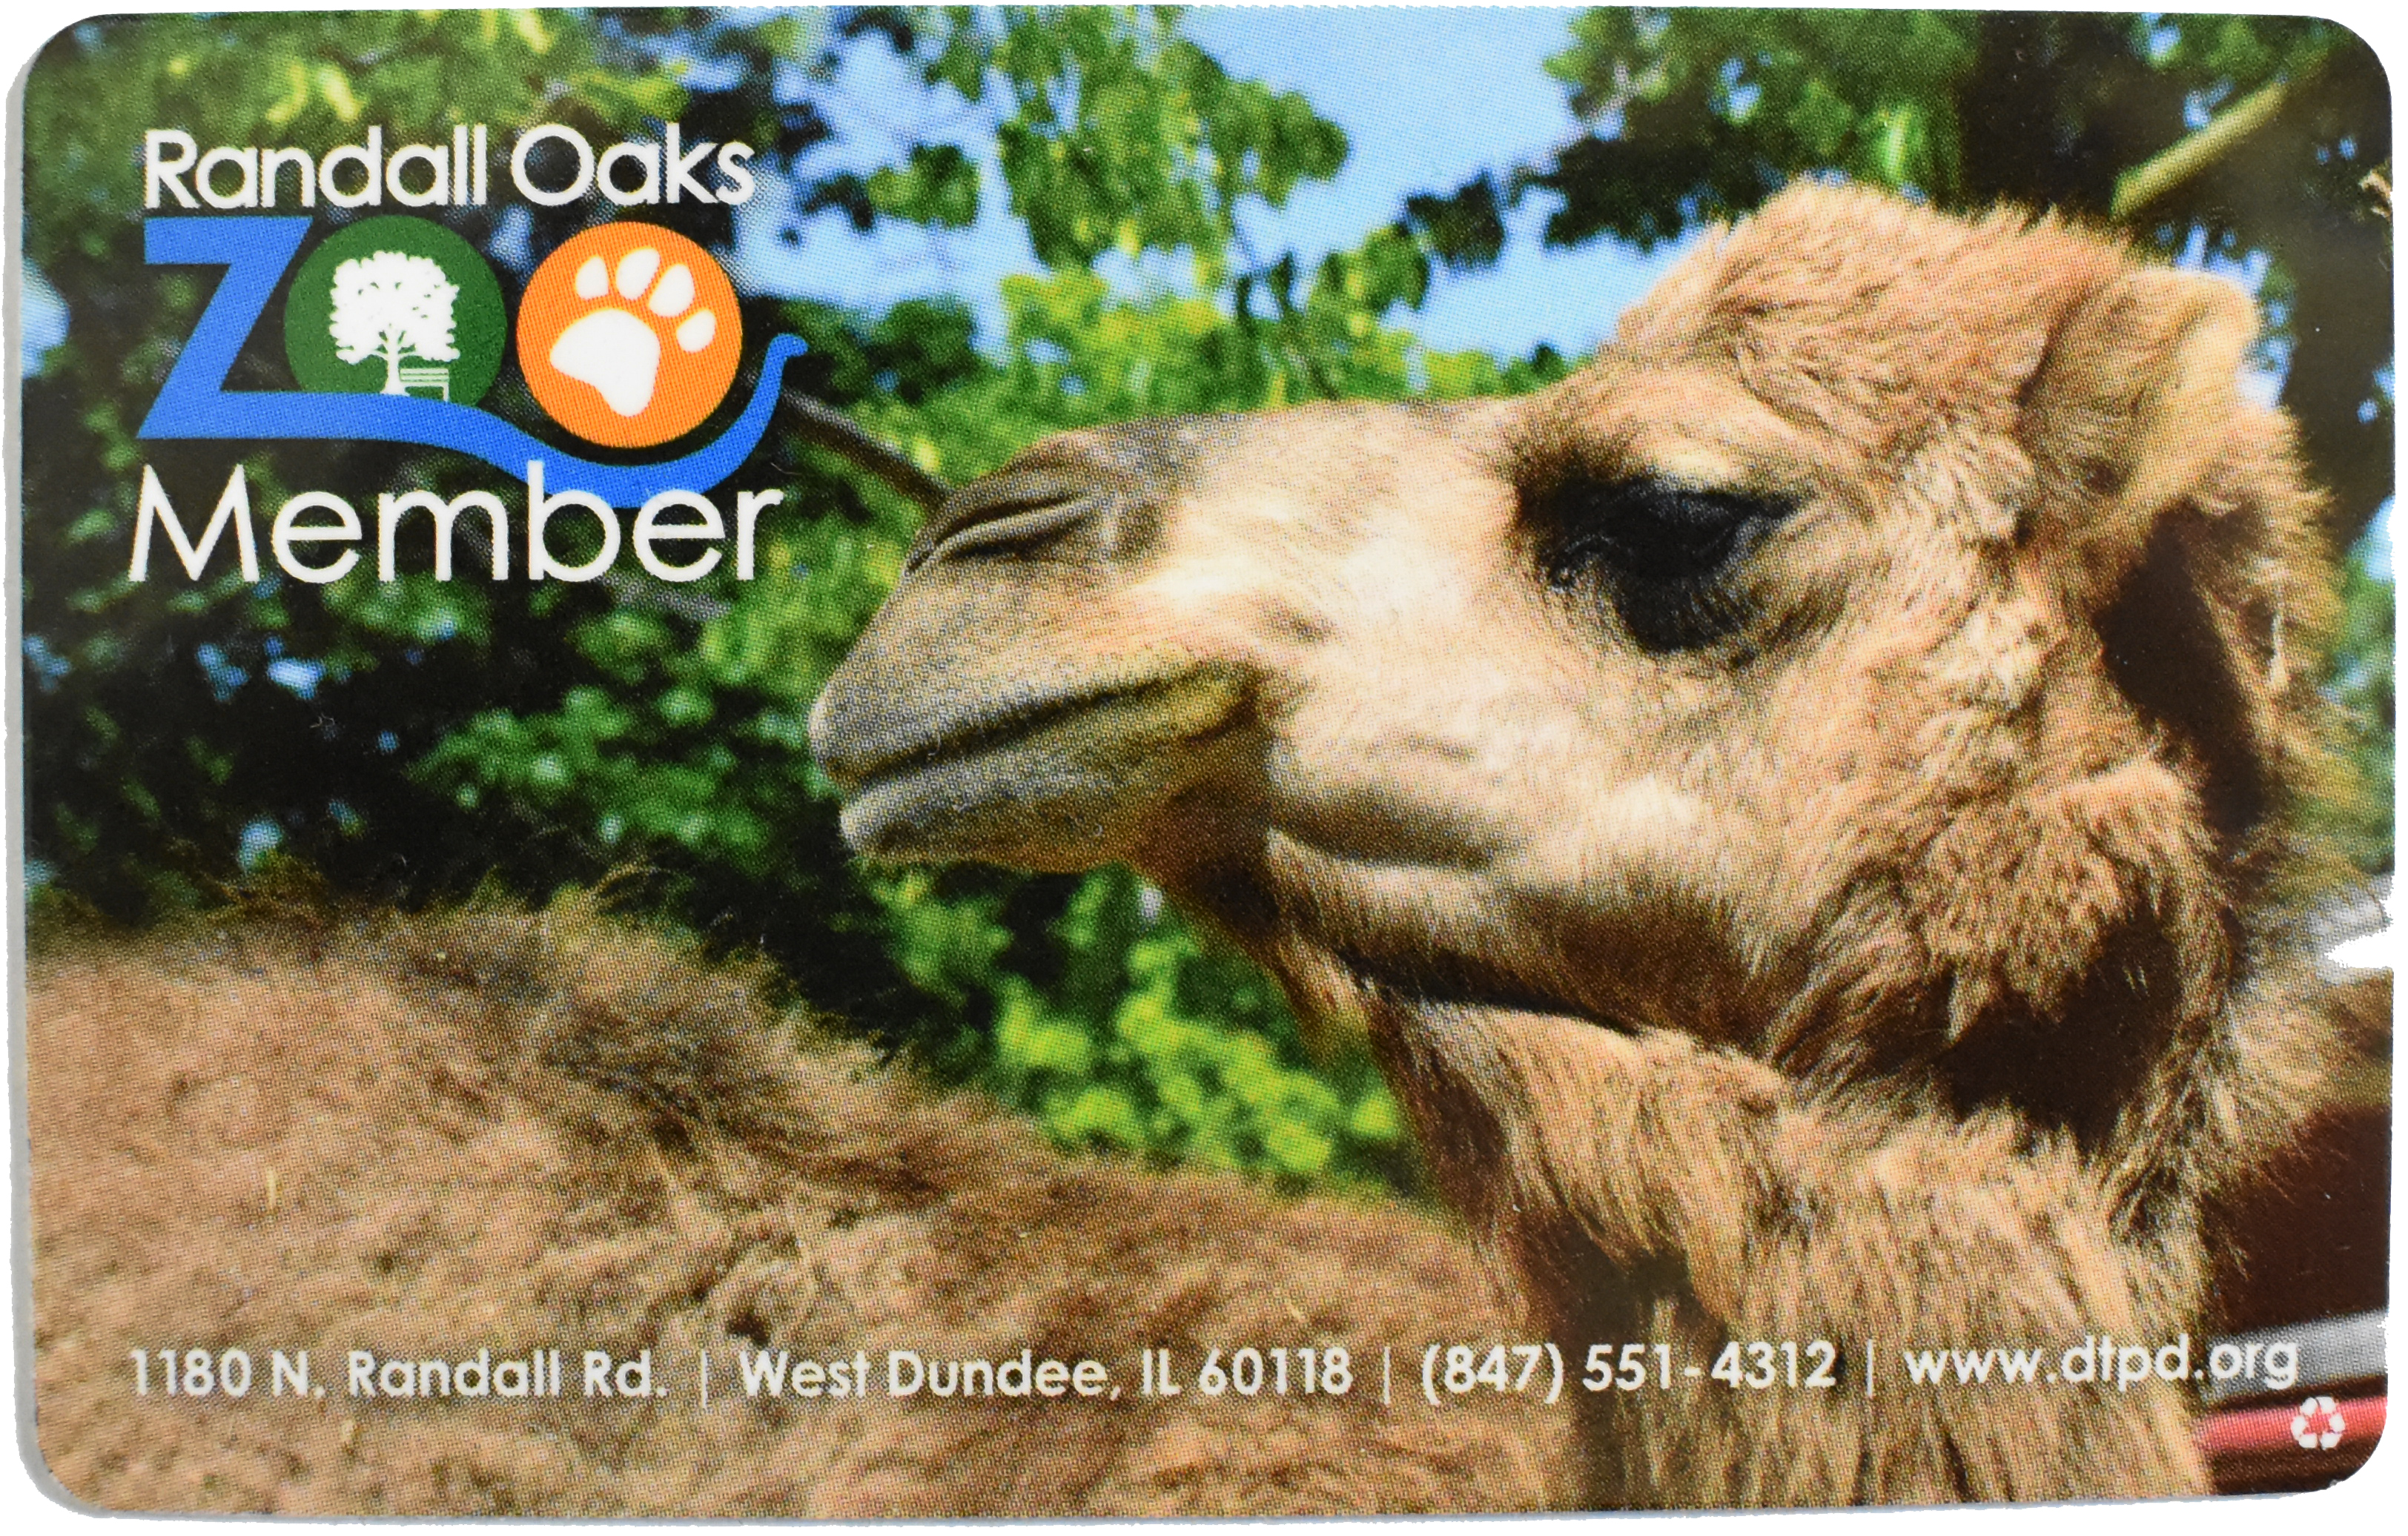 Randall Oaks Zoo   Dundee Township Park District